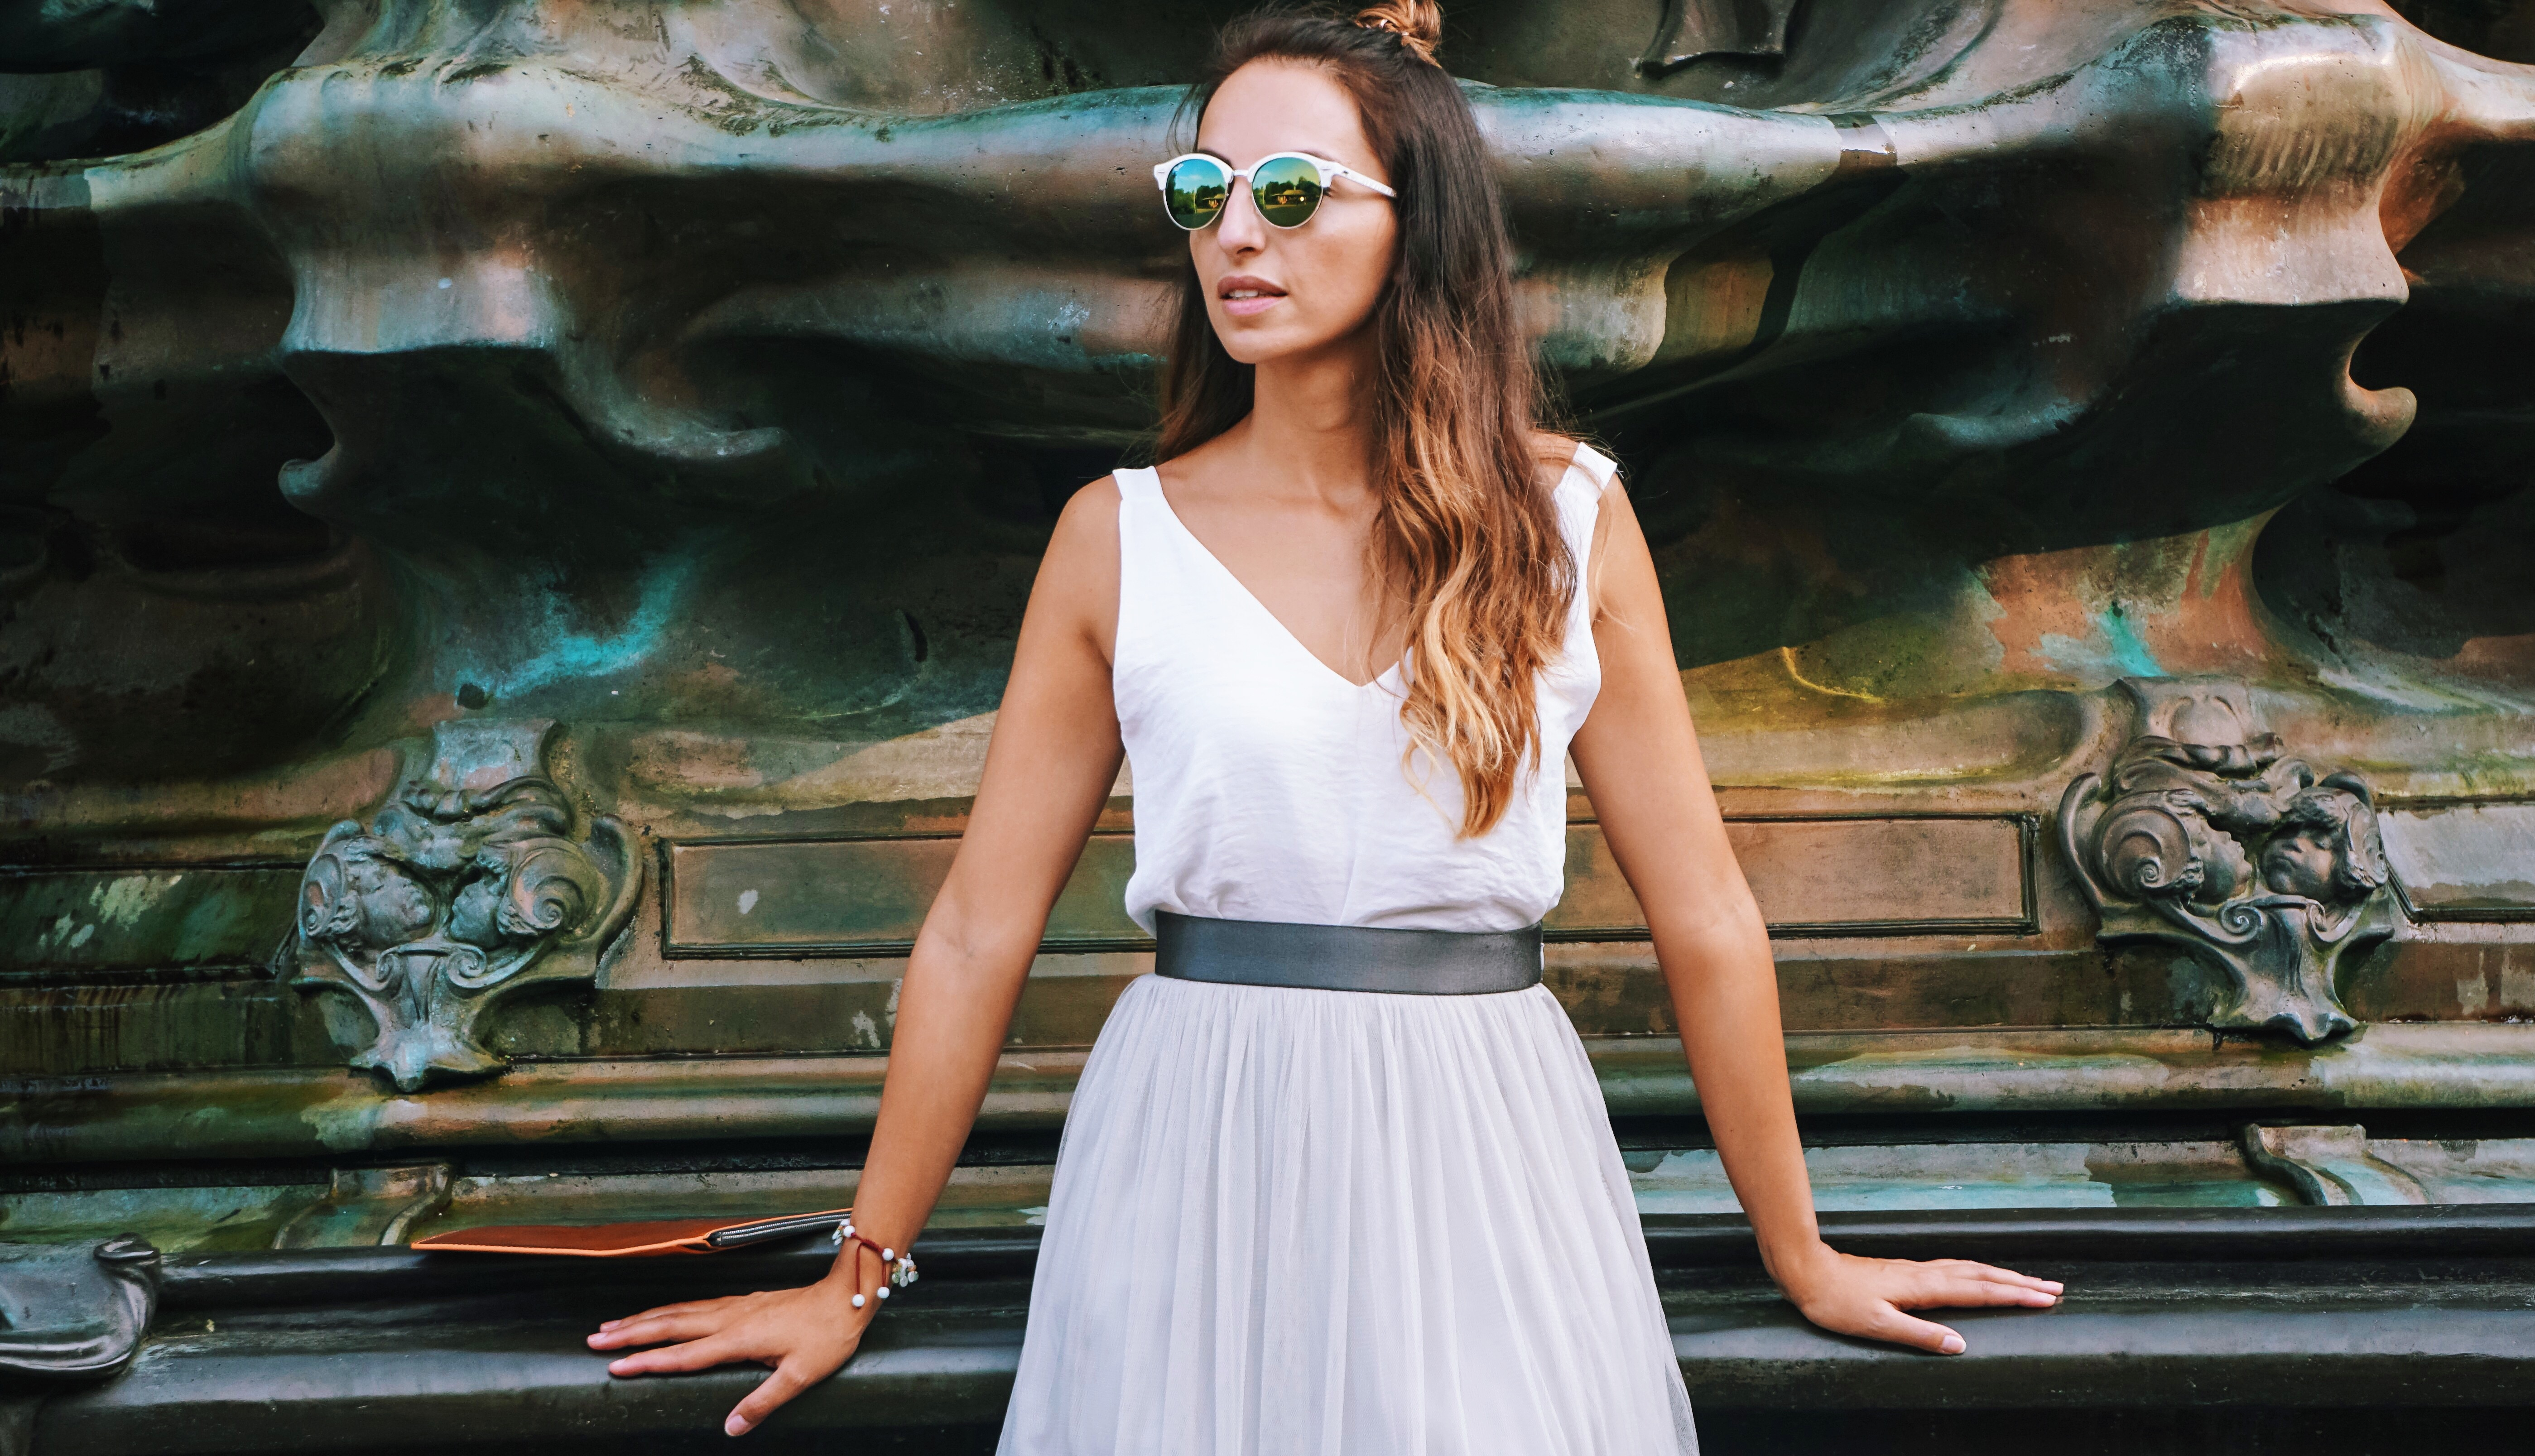 hyphy hip , tulle skirt , HyphyHip, RayBan, reiss, fashion blogger , ootd, outfit post